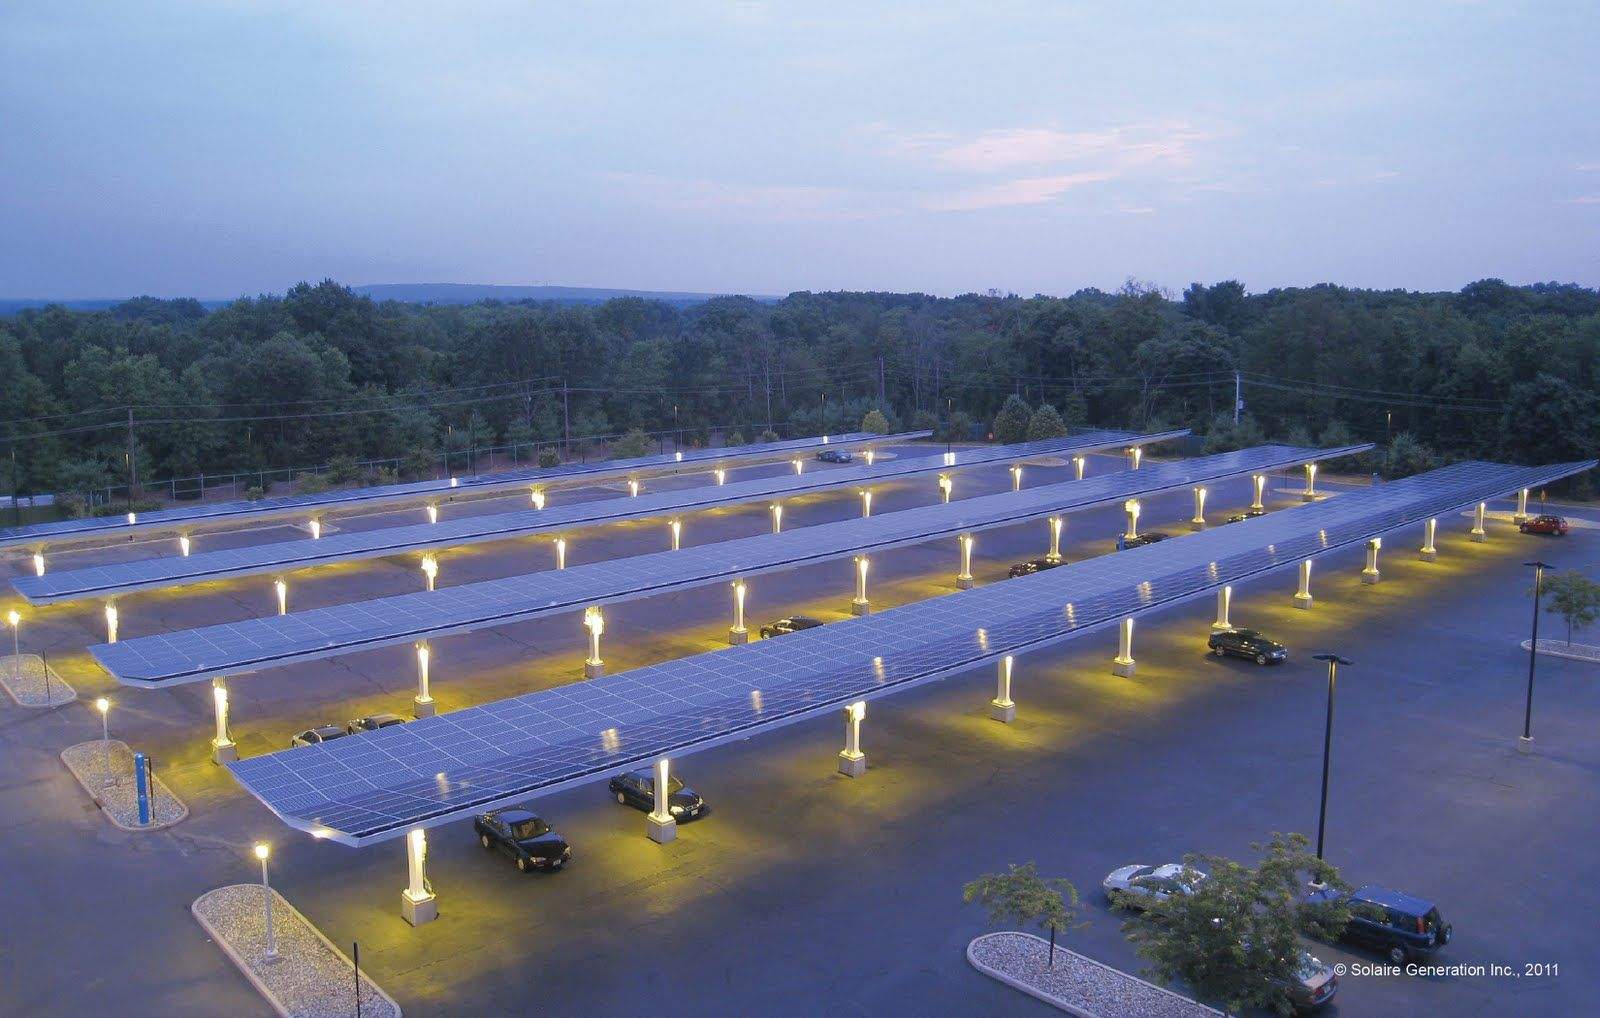 Solaranlage Garage Solaire S Parking Canopies A Cool Parking Lot Cool